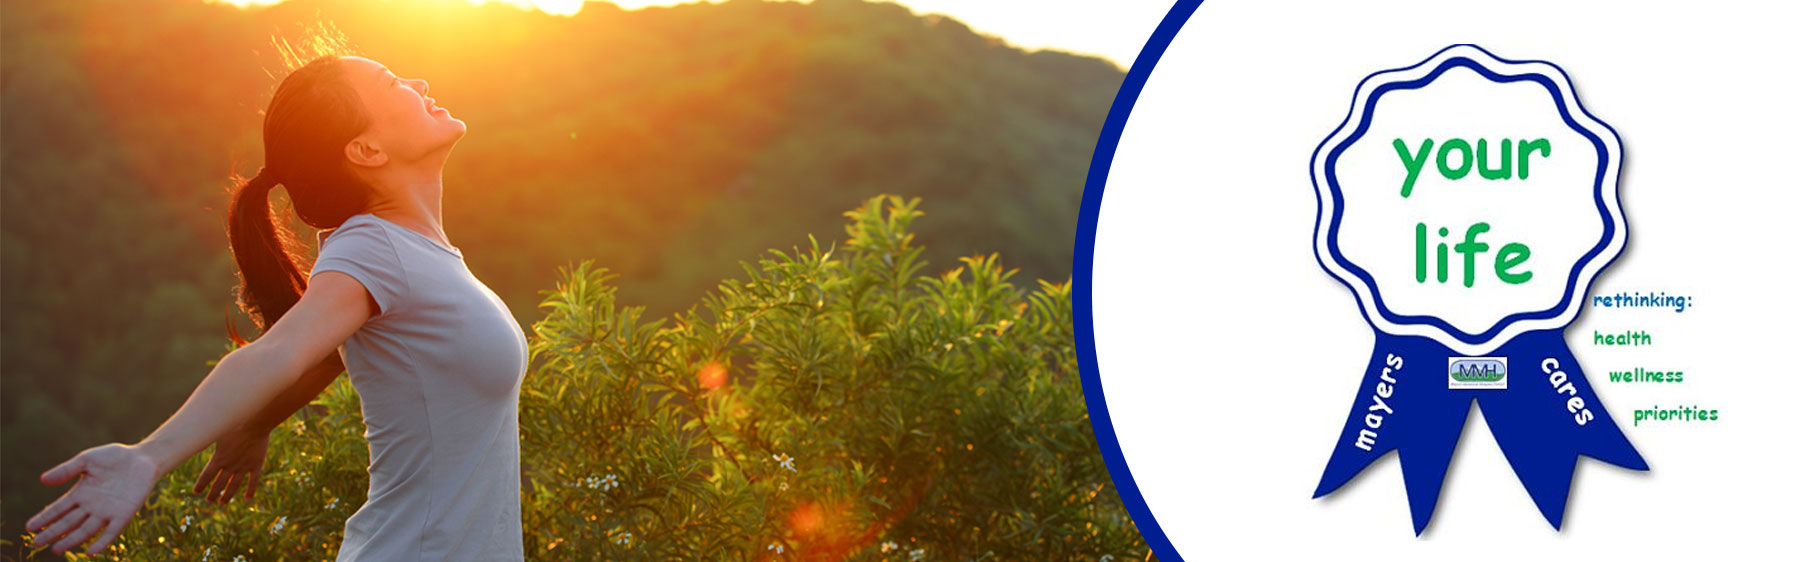 Banner picture (Left hand side) of a woman stretching out her arms behind her back and looking up to the sky smiling. She is standing outside next to a bush with flowers, hills in the background, and the sun beaming over the hills onto her face  Banner picture (Left hand side) of a ribbon that says: your life Mayers cares rethinking: health wellness priorities